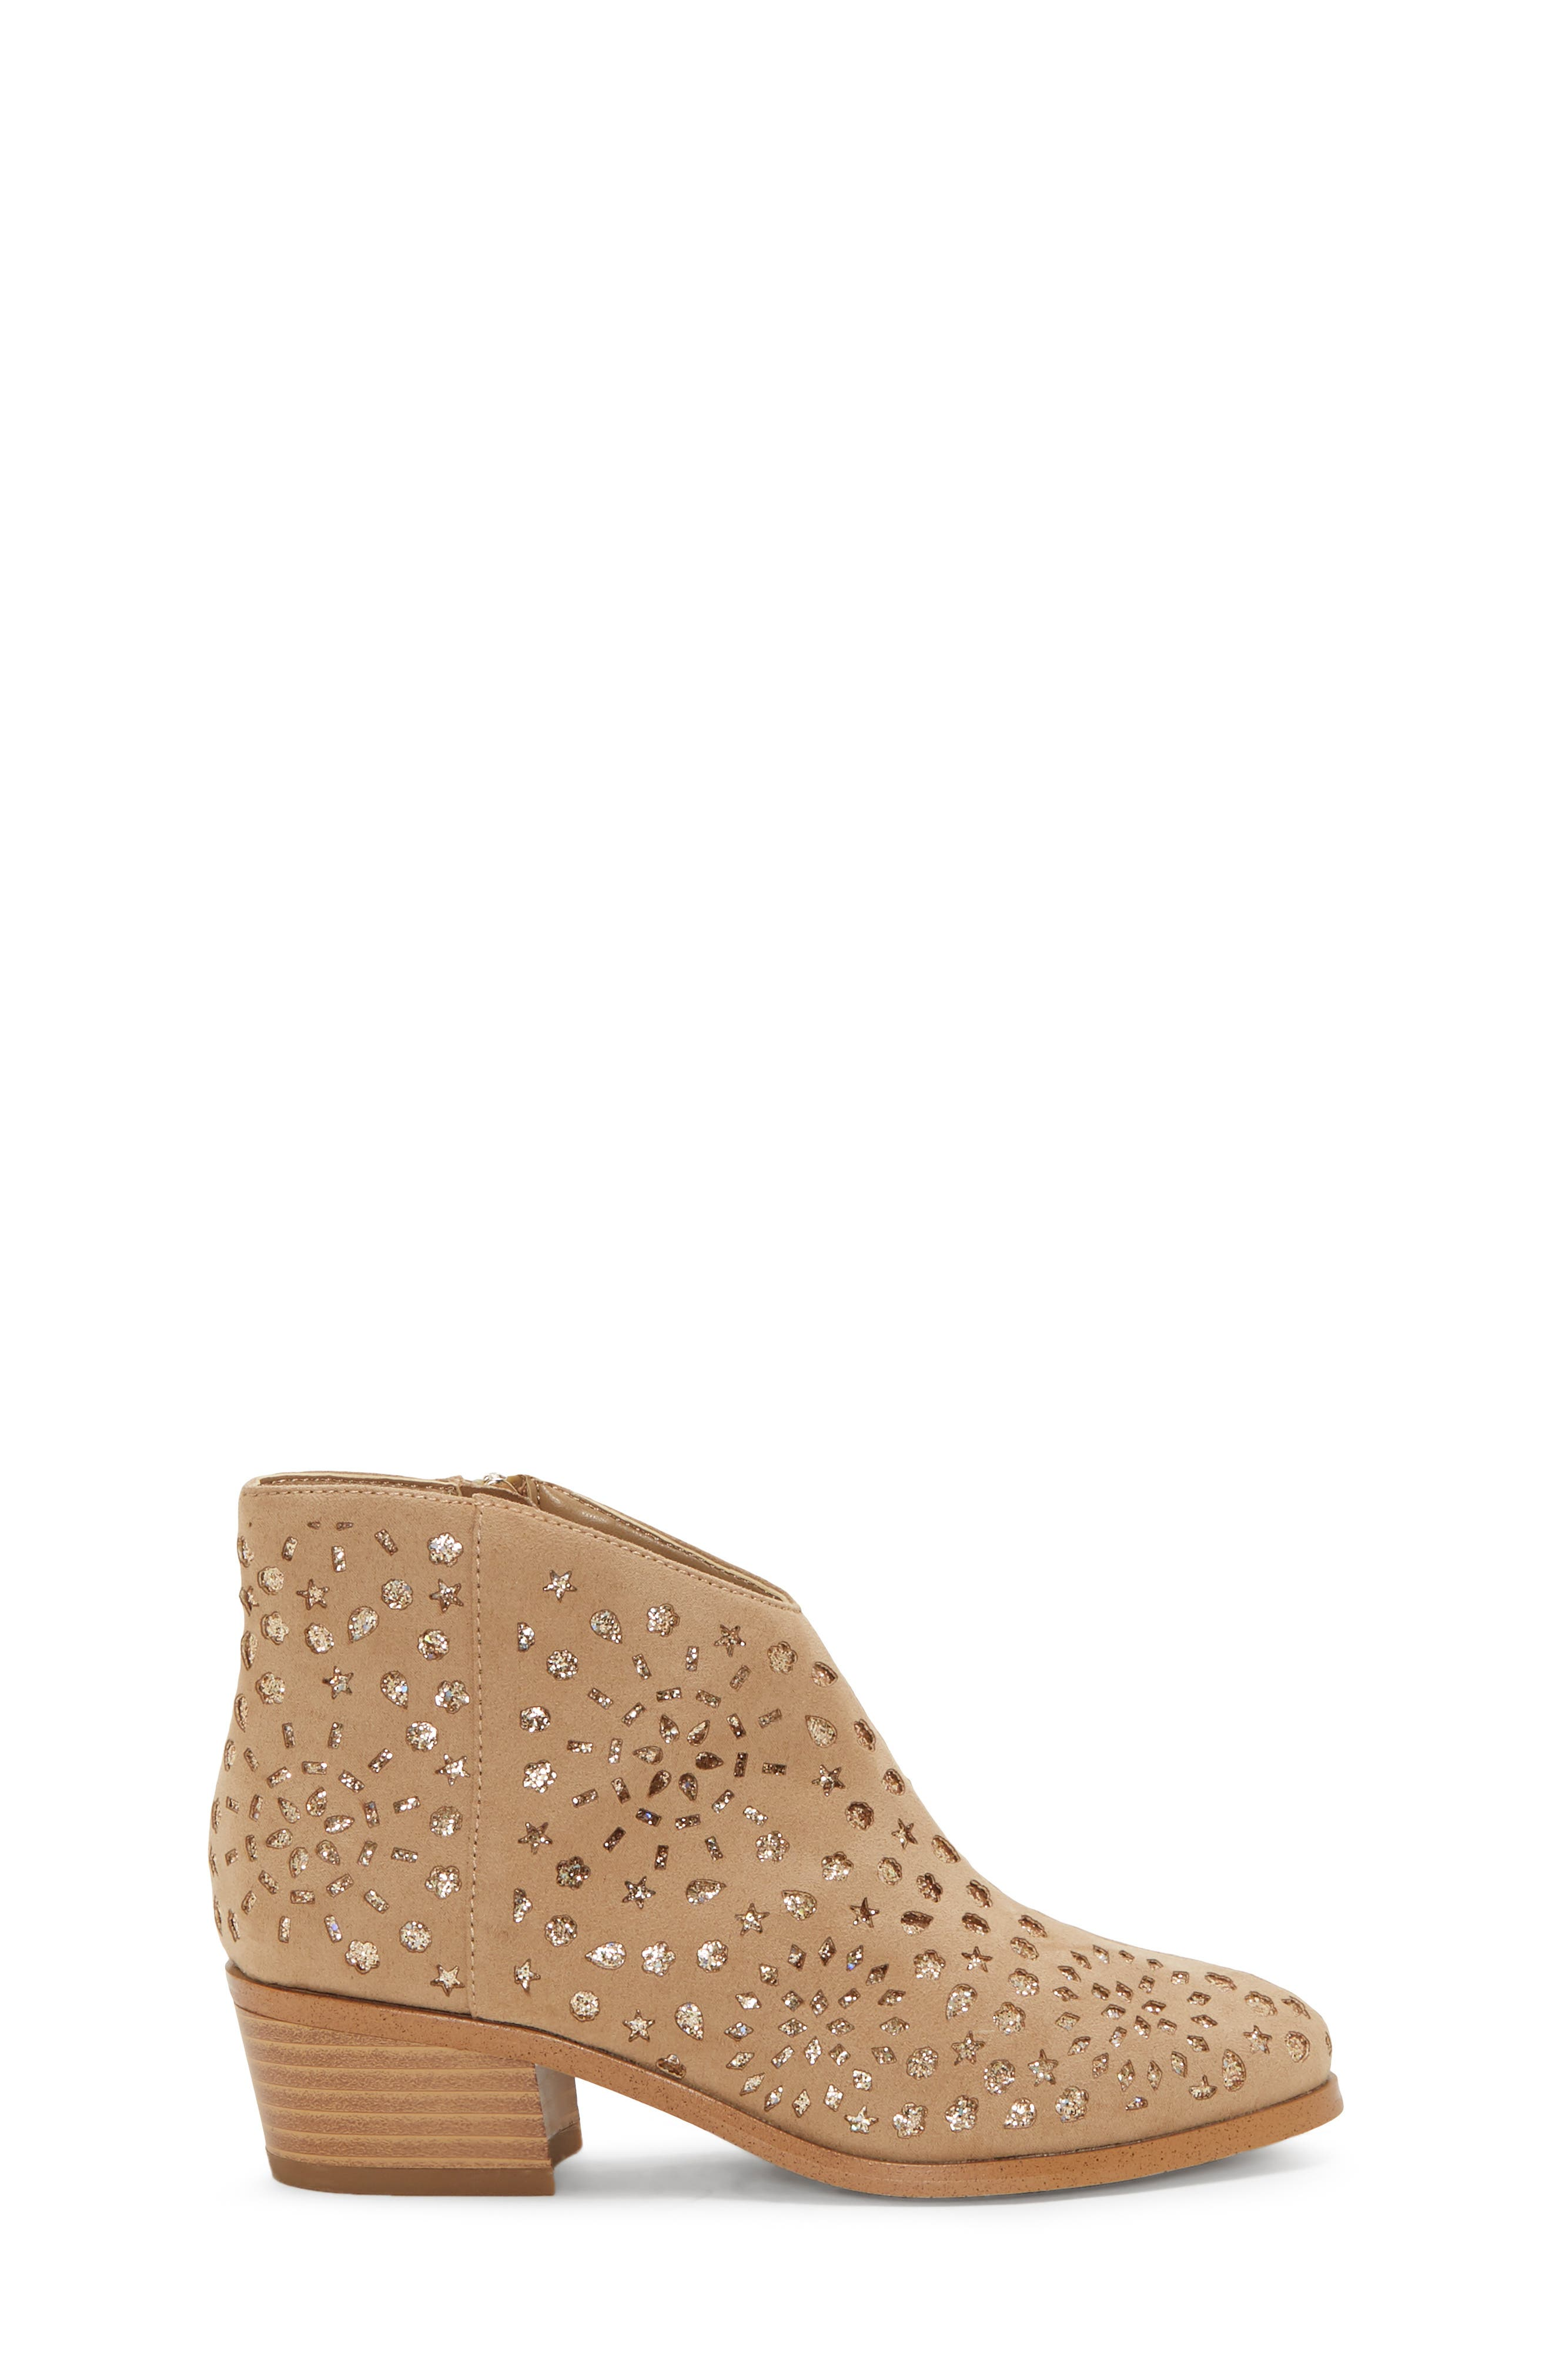 VINCE CAMUTO, Perforated Glitter Boot, Alternate thumbnail 3, color, 718